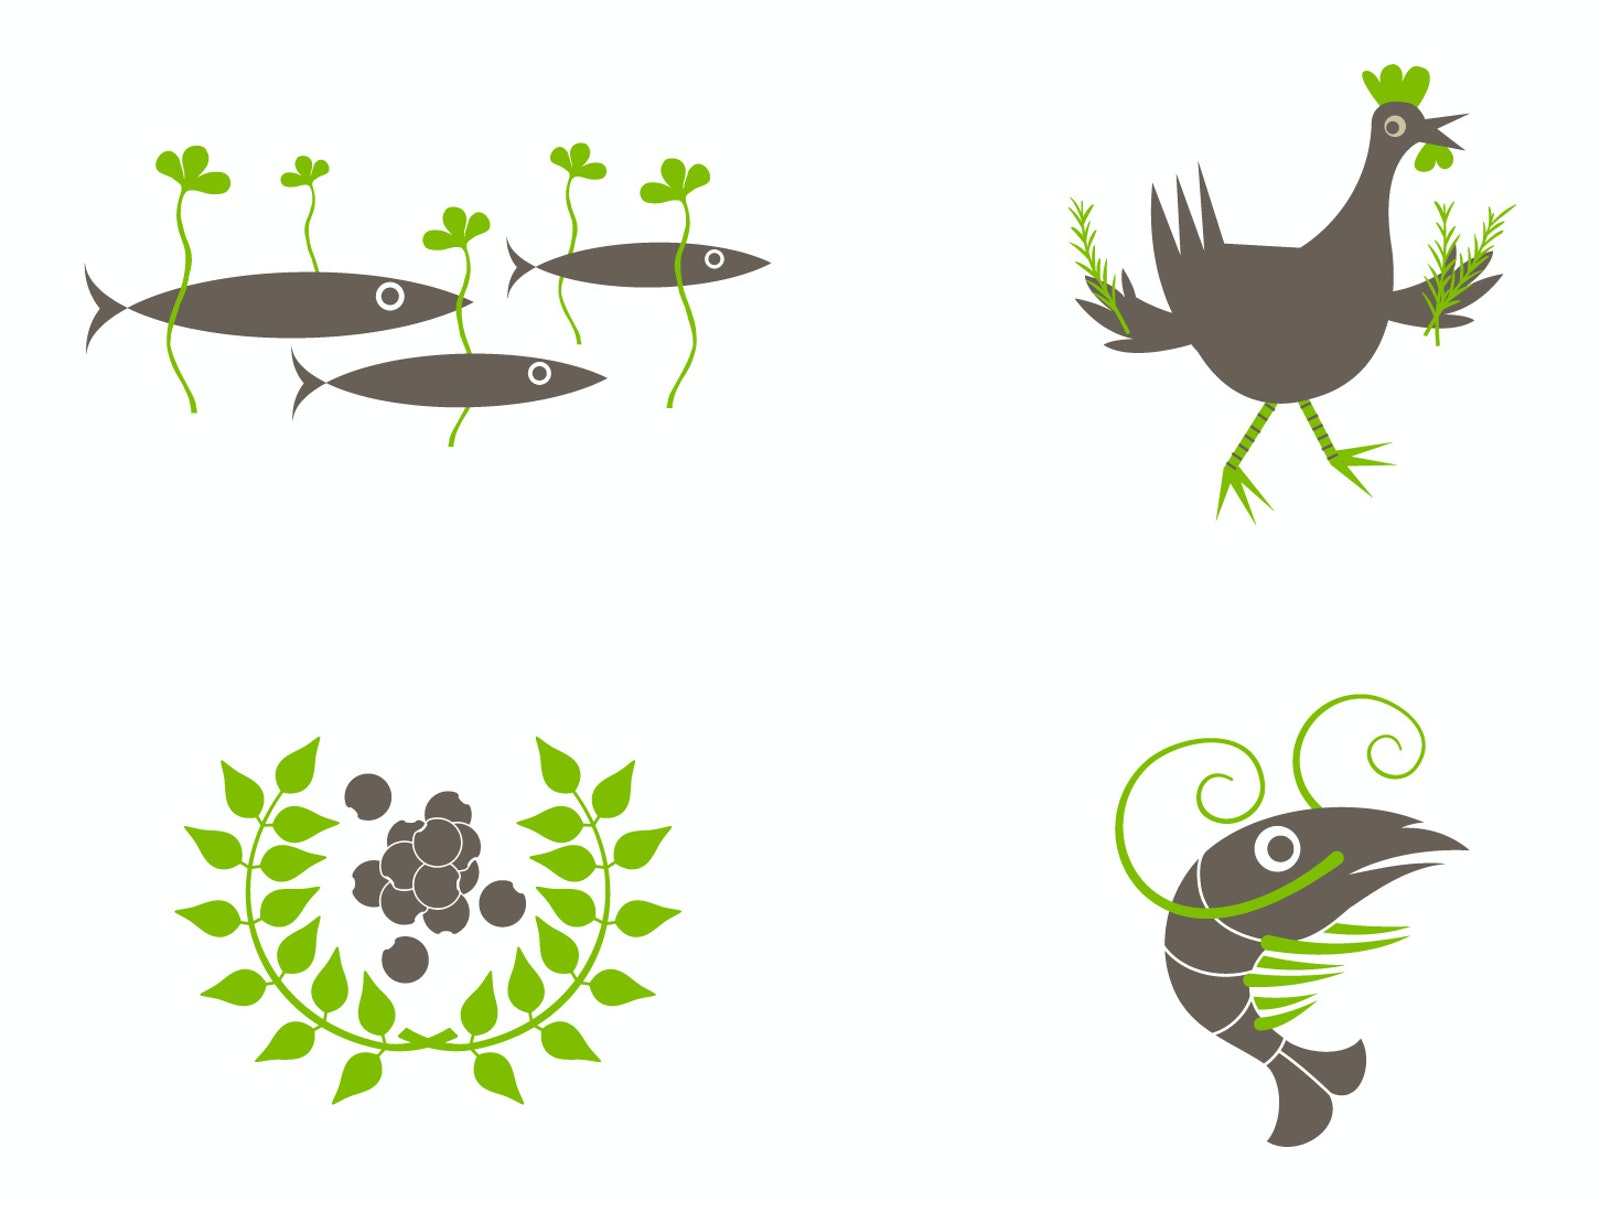 Simple Seed Illustrations